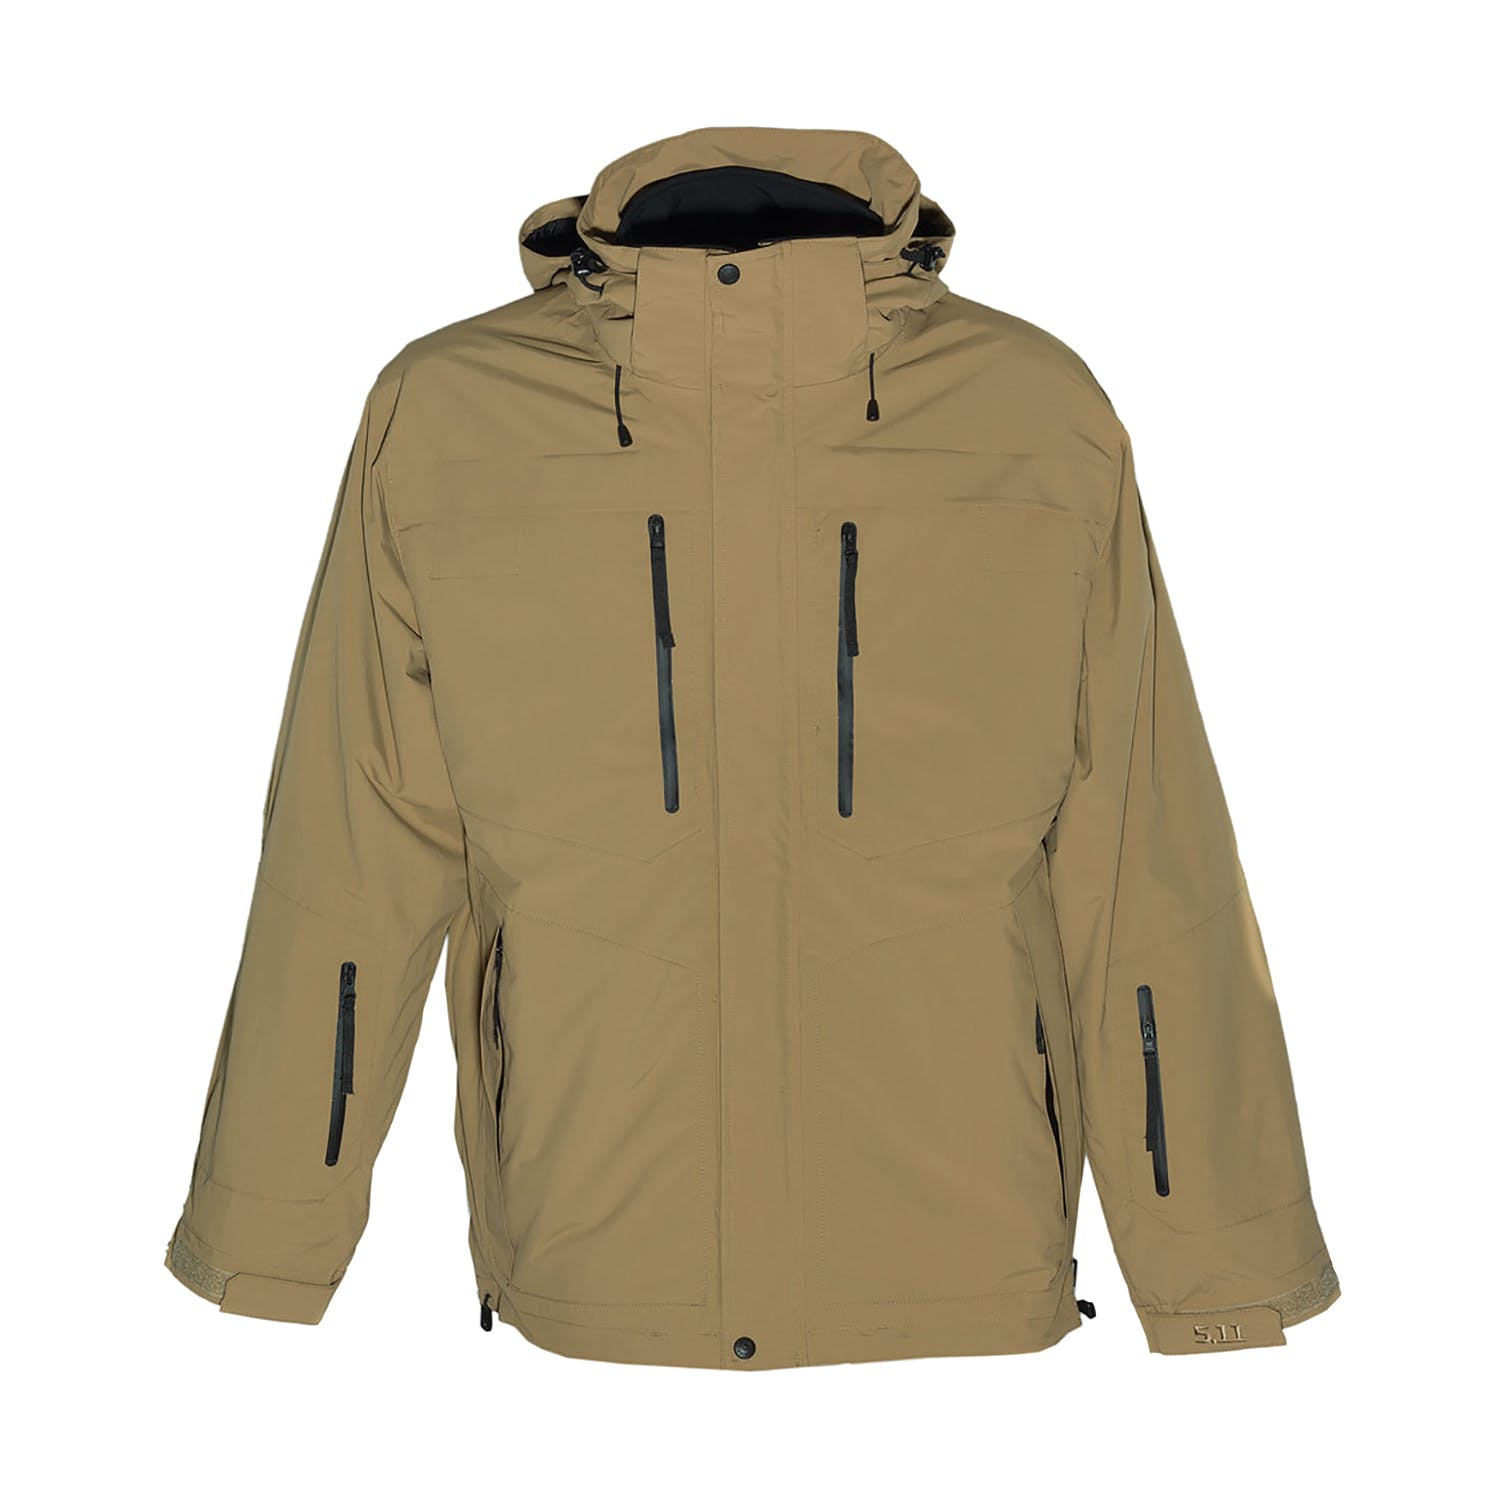 5 11 Tactical Bristol Parka Jacket From Nightgear Uk